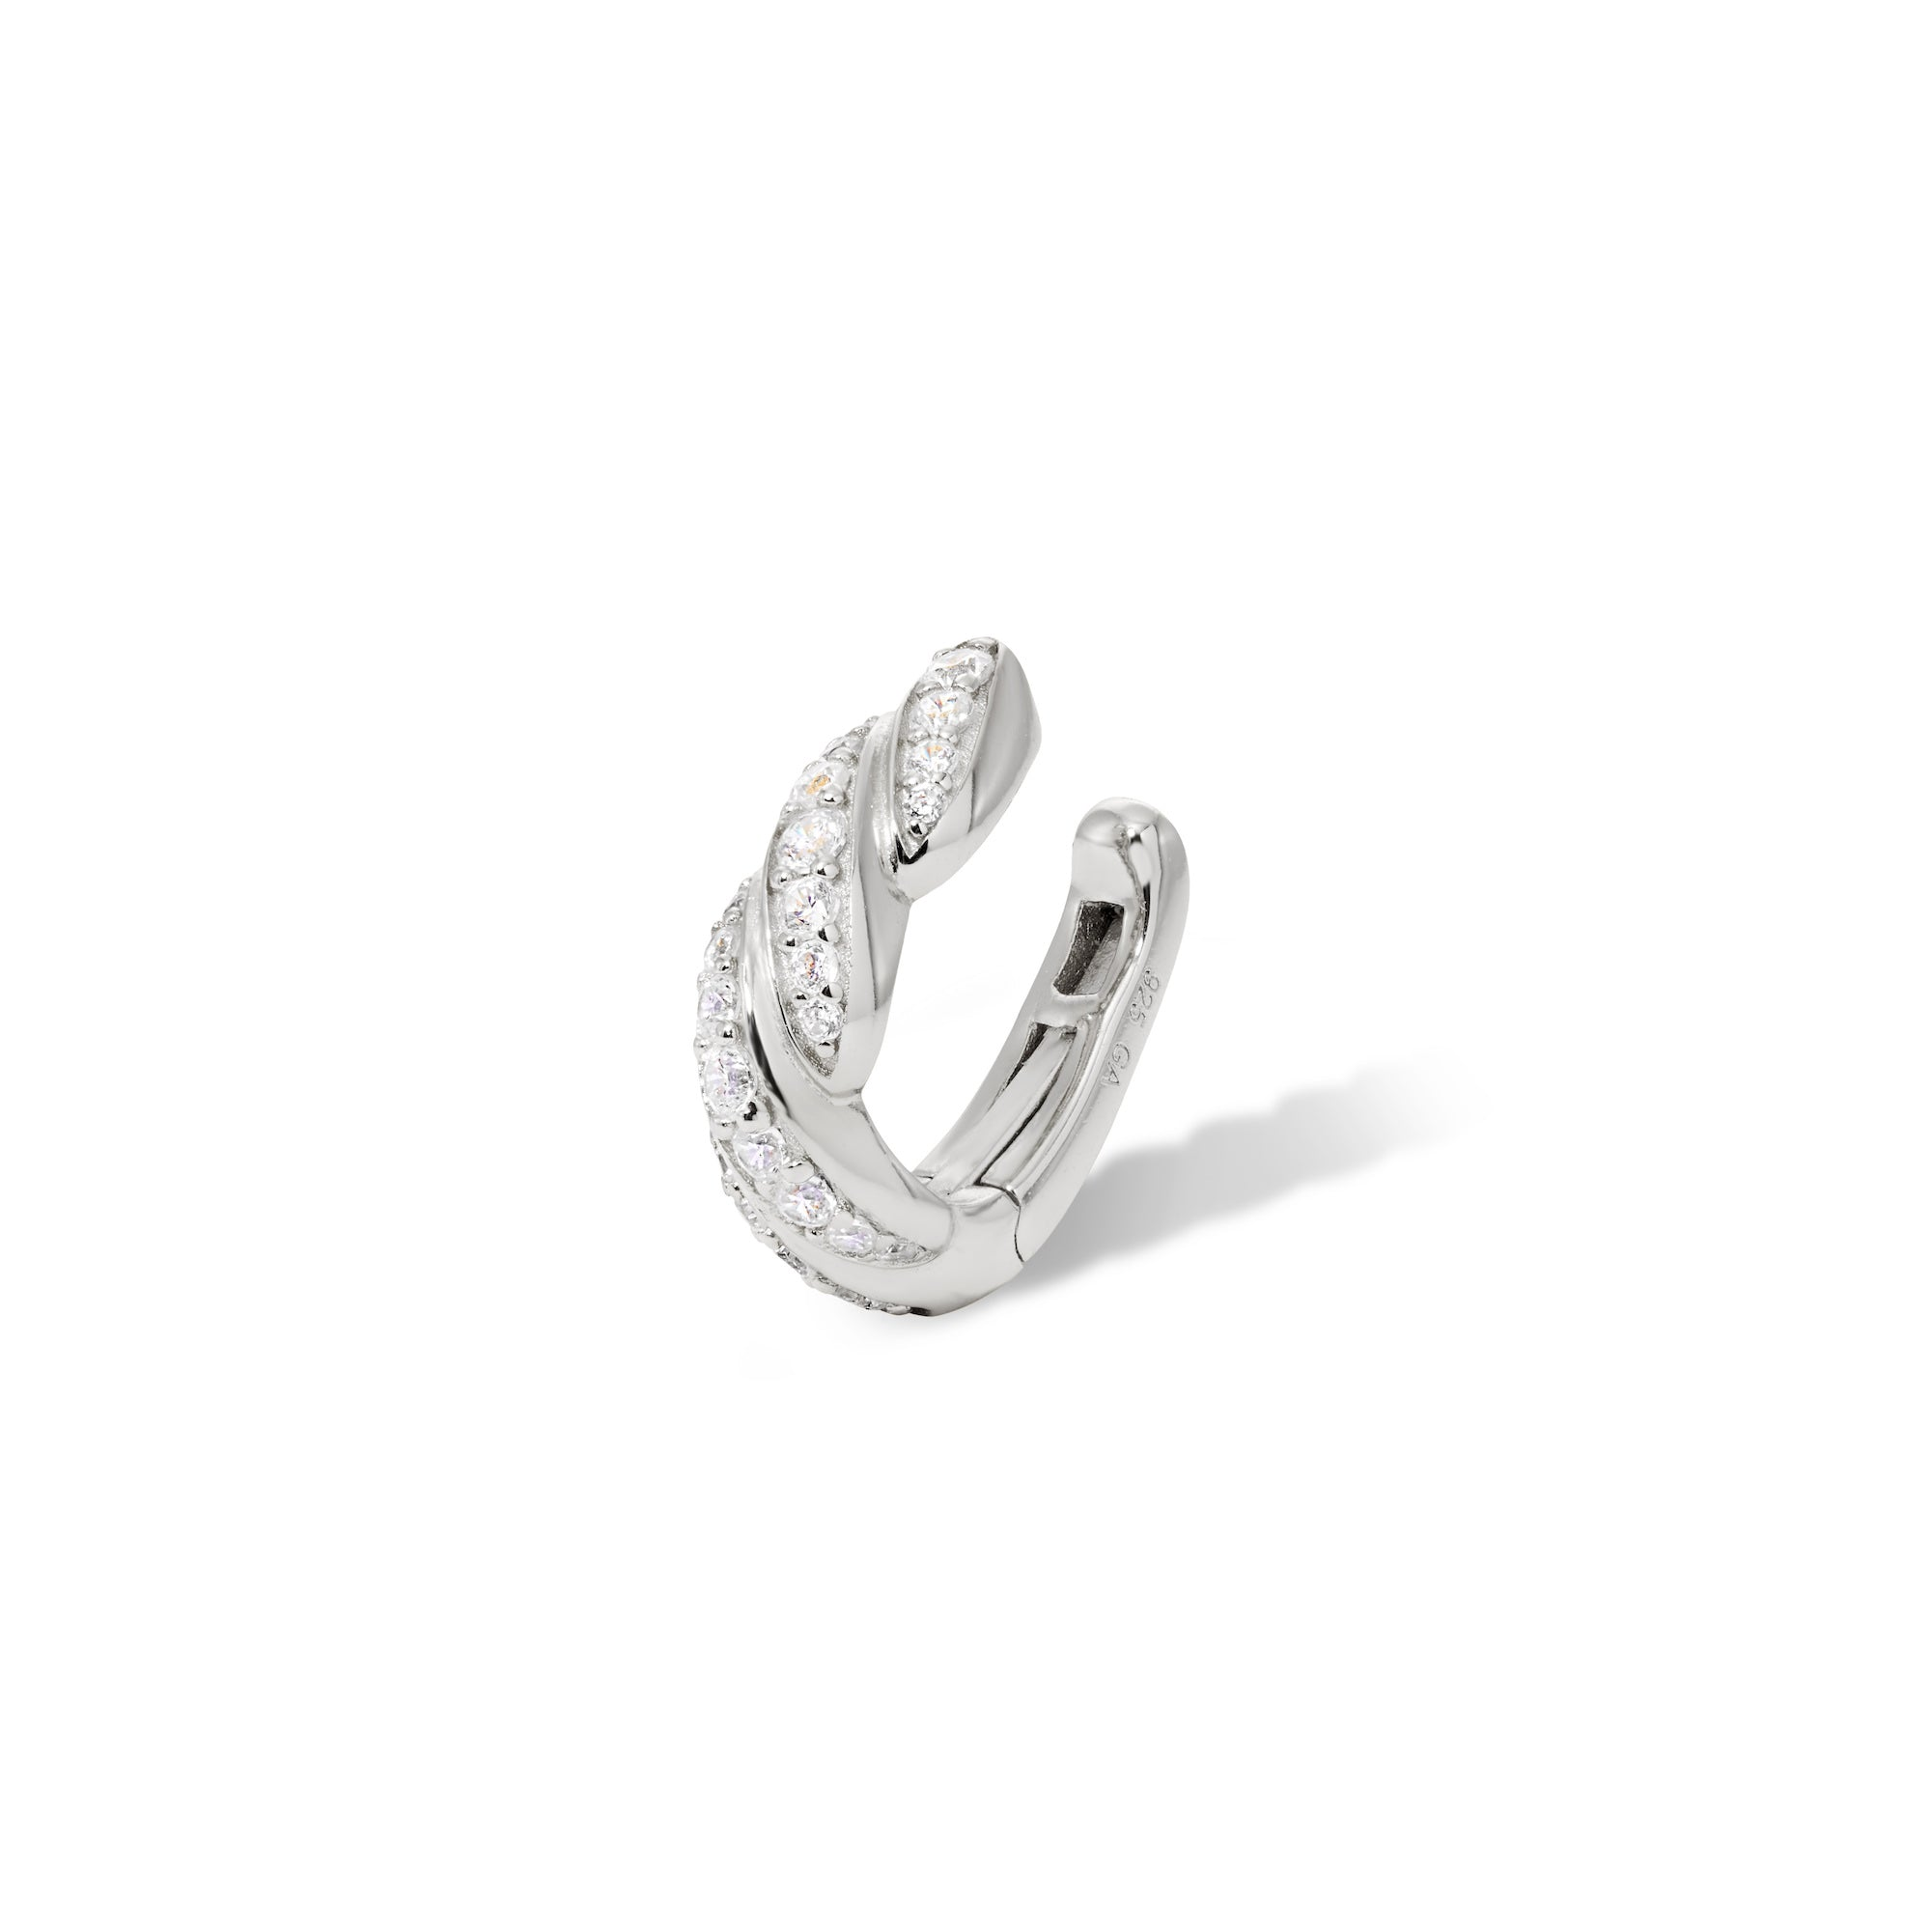 Speira band pave sterling silver ear cuff